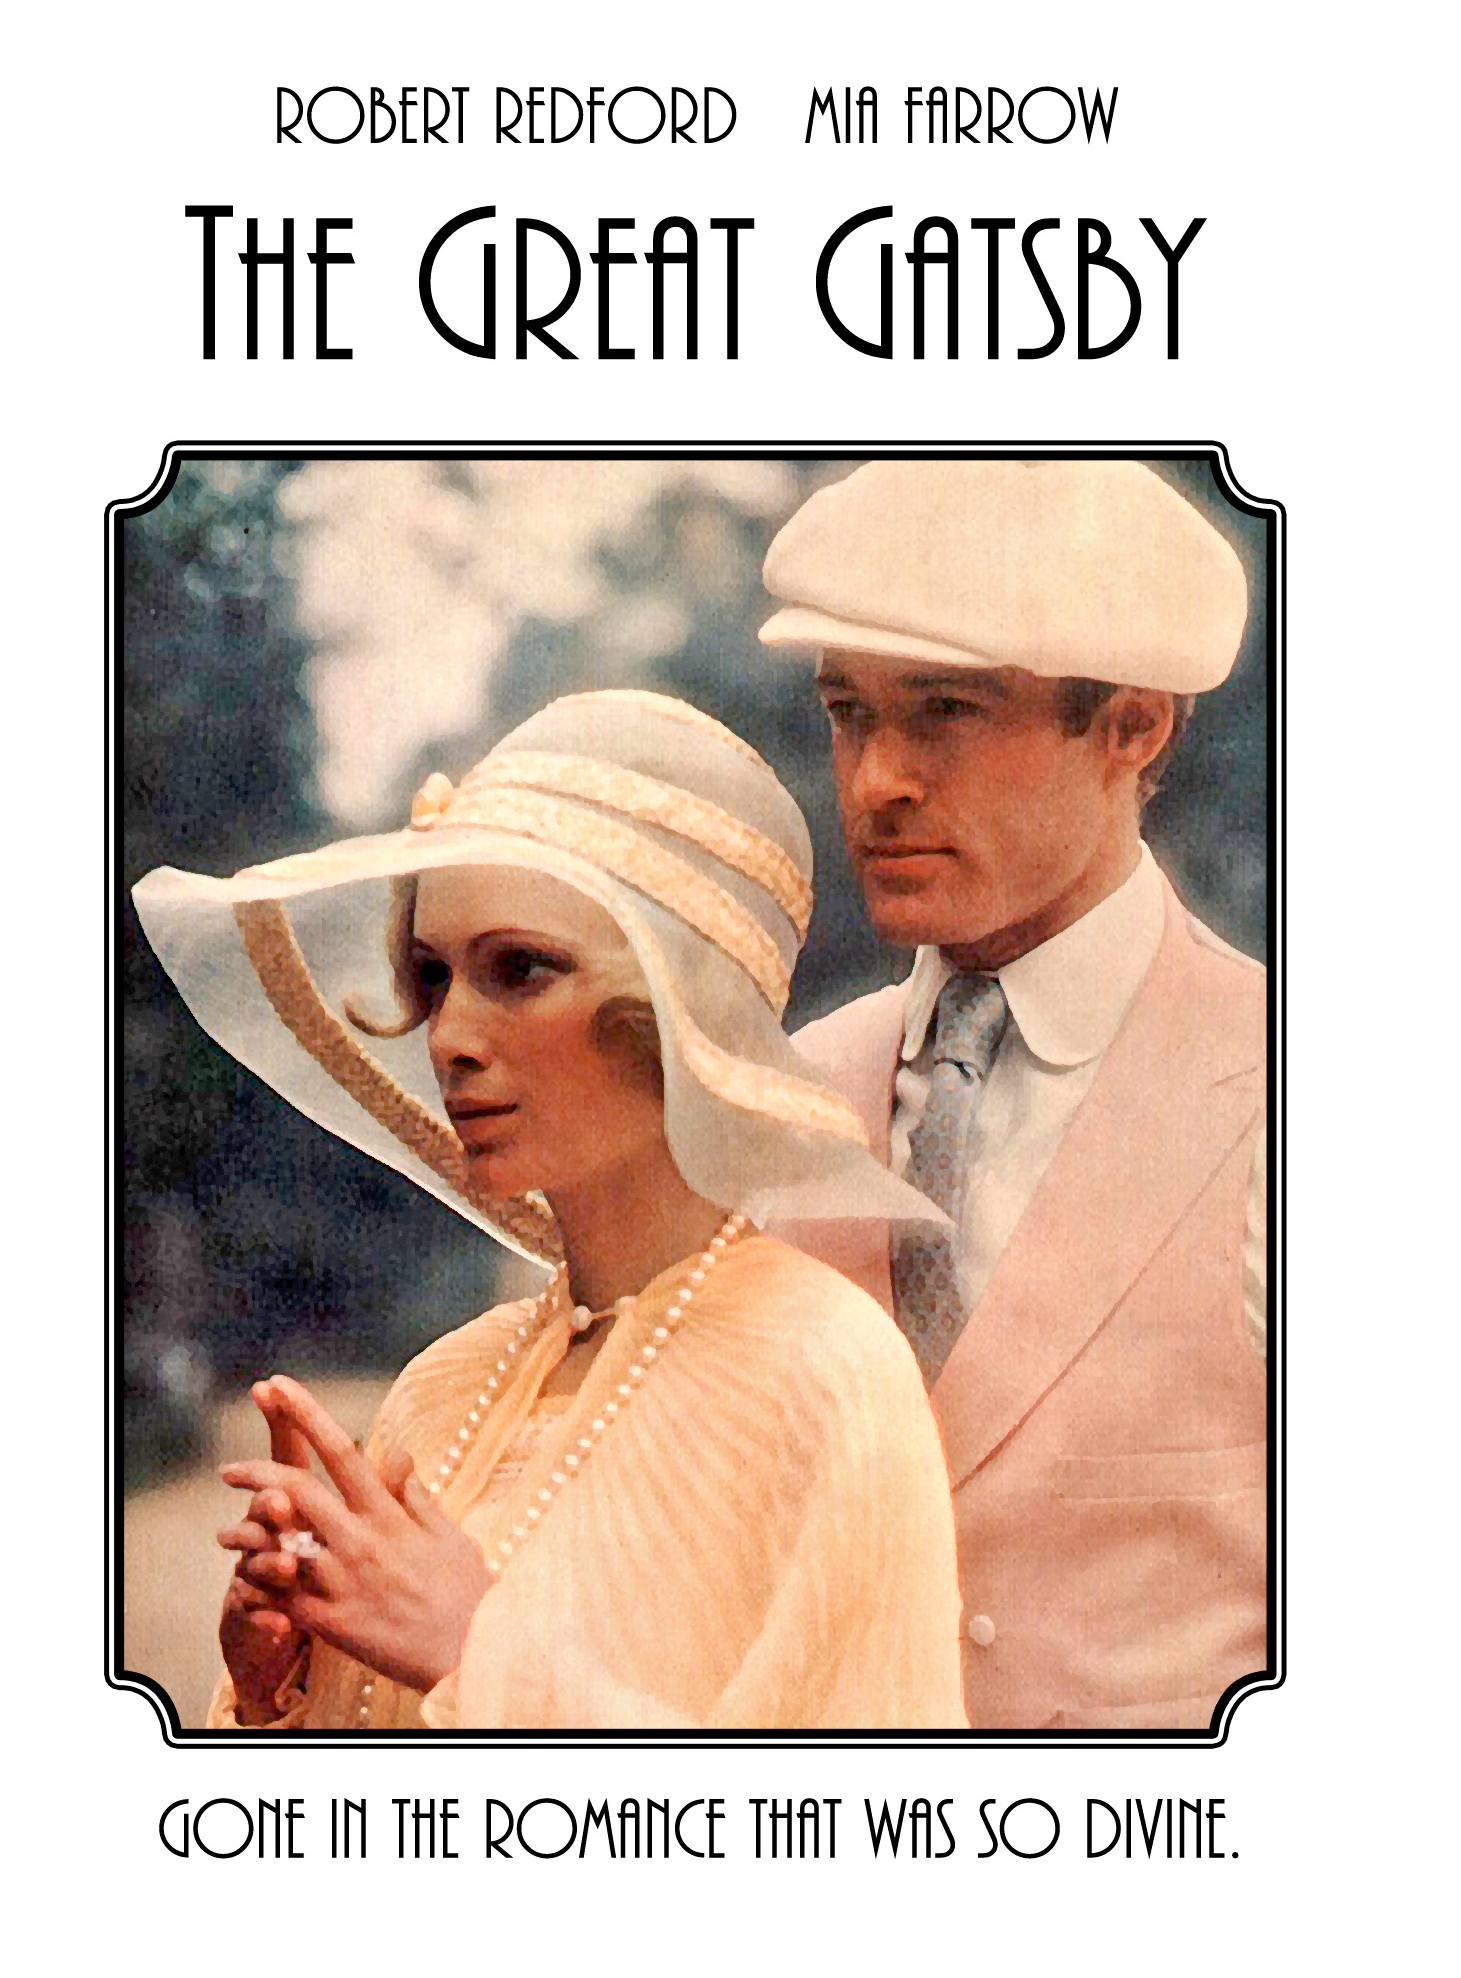 The Great Gatsby 1974 The Great Gatsby | Tra...